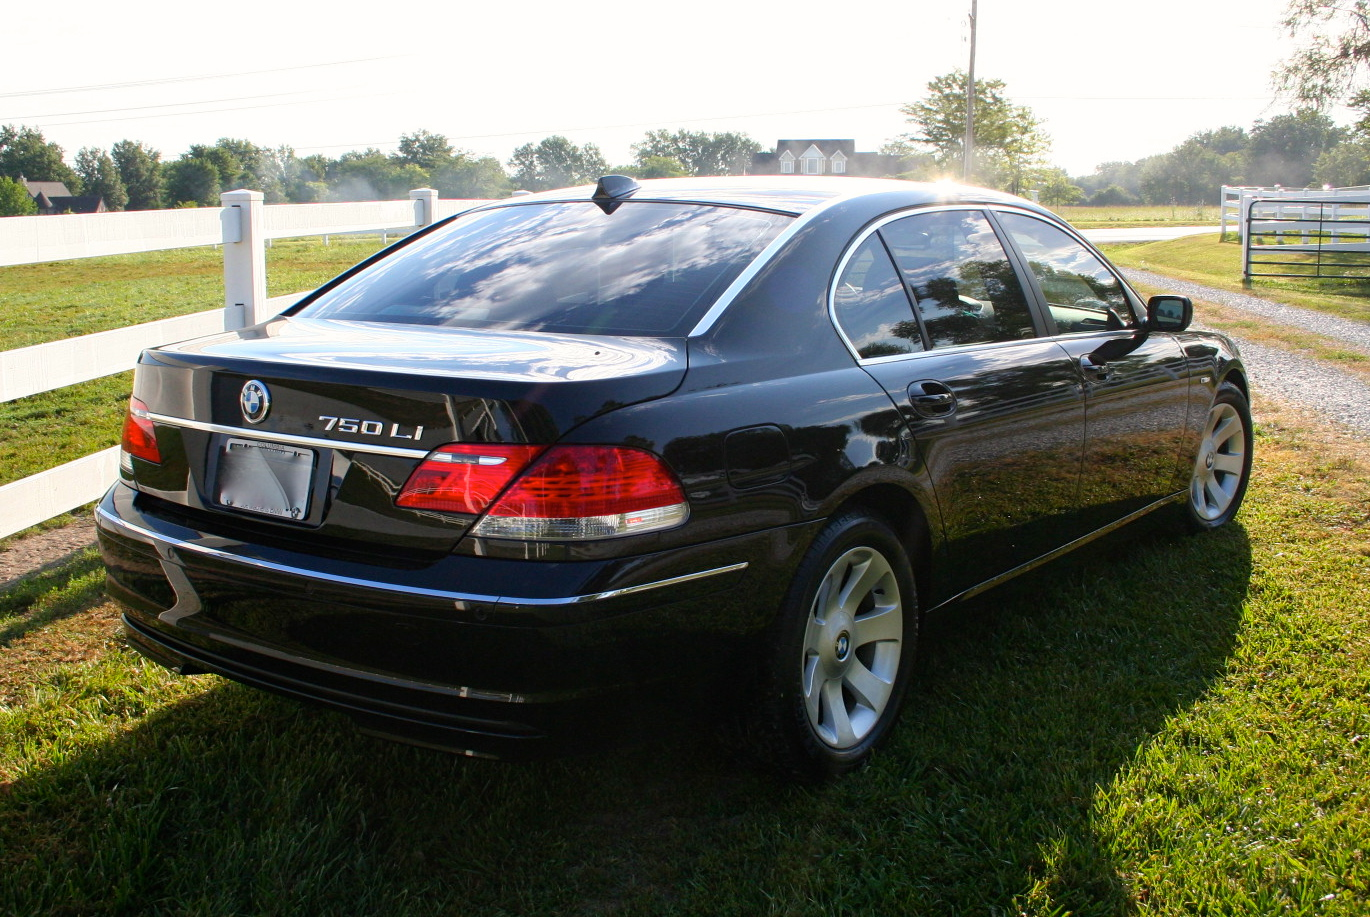 2006 Bmw 750i >> 2006 BMW 7 Series - Pictures - CarGurus